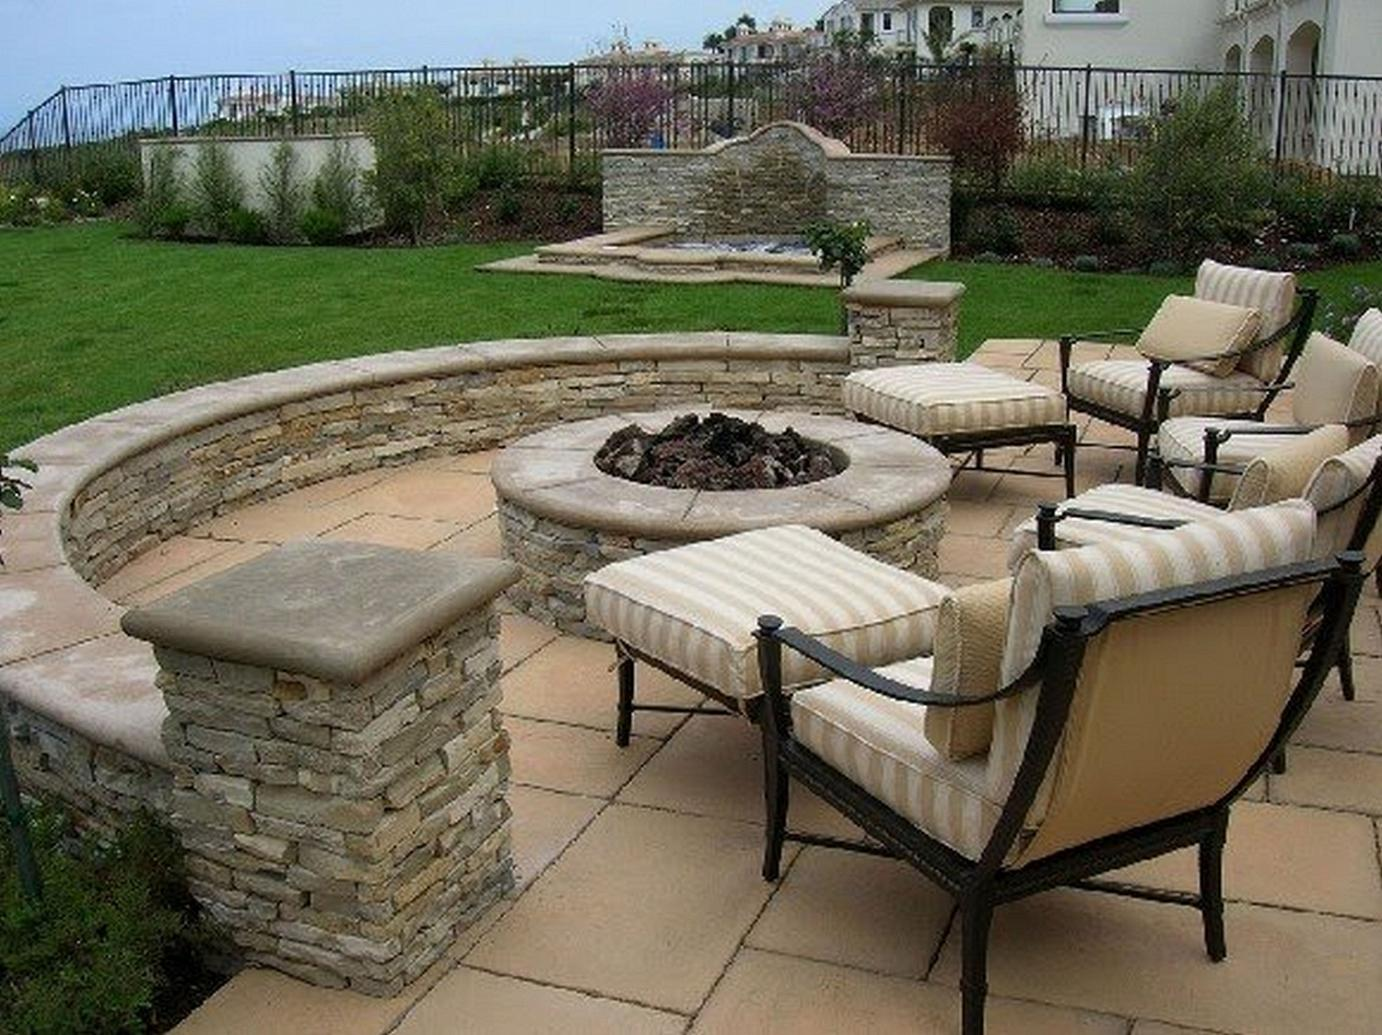 Backyard patio ideas - Backyard Patio Ideas